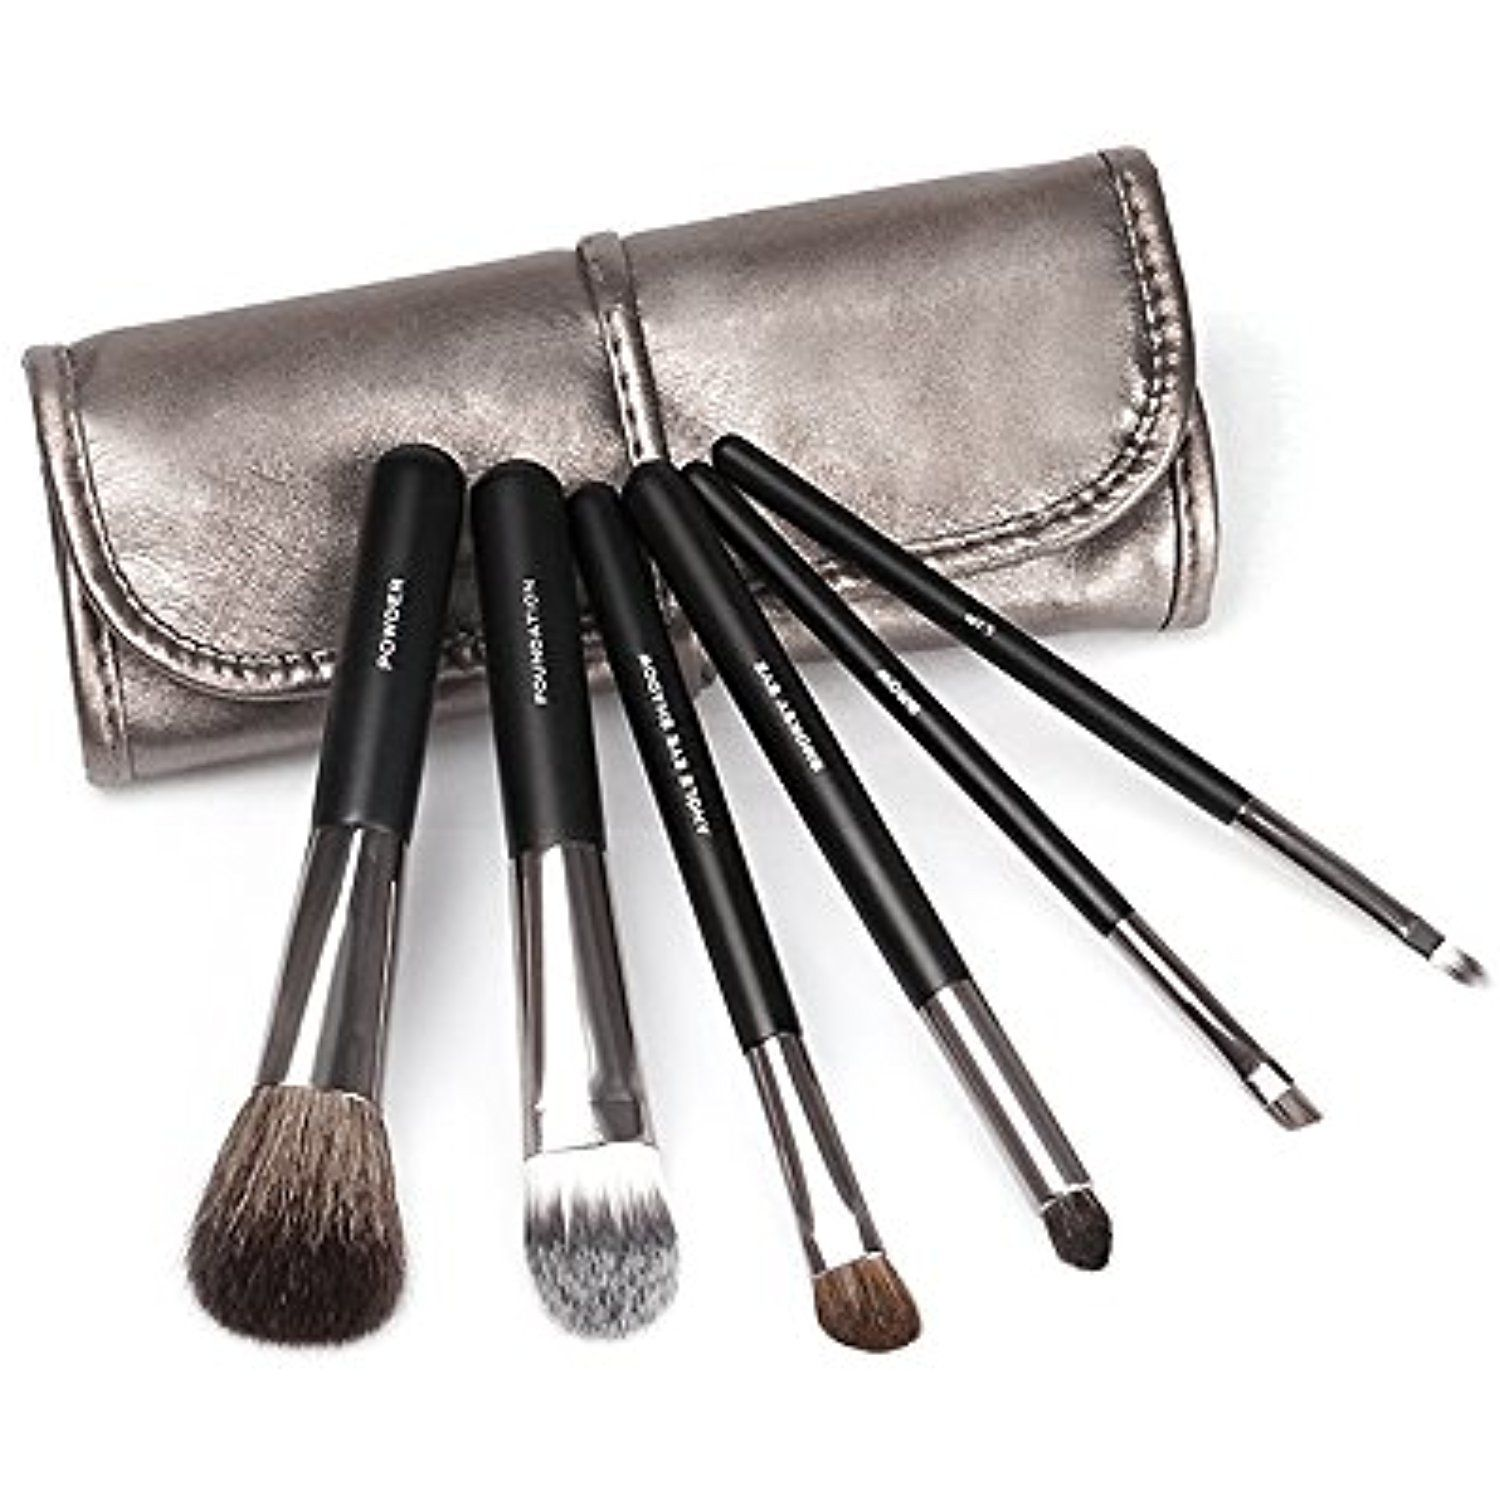 Bellexixi 6 Piece Travel Makeup Brush Set Professional Essential Face And Eye Makeup Brushes Find Out More About The Grea Makeup Brush Set Eye Makeup Brushes